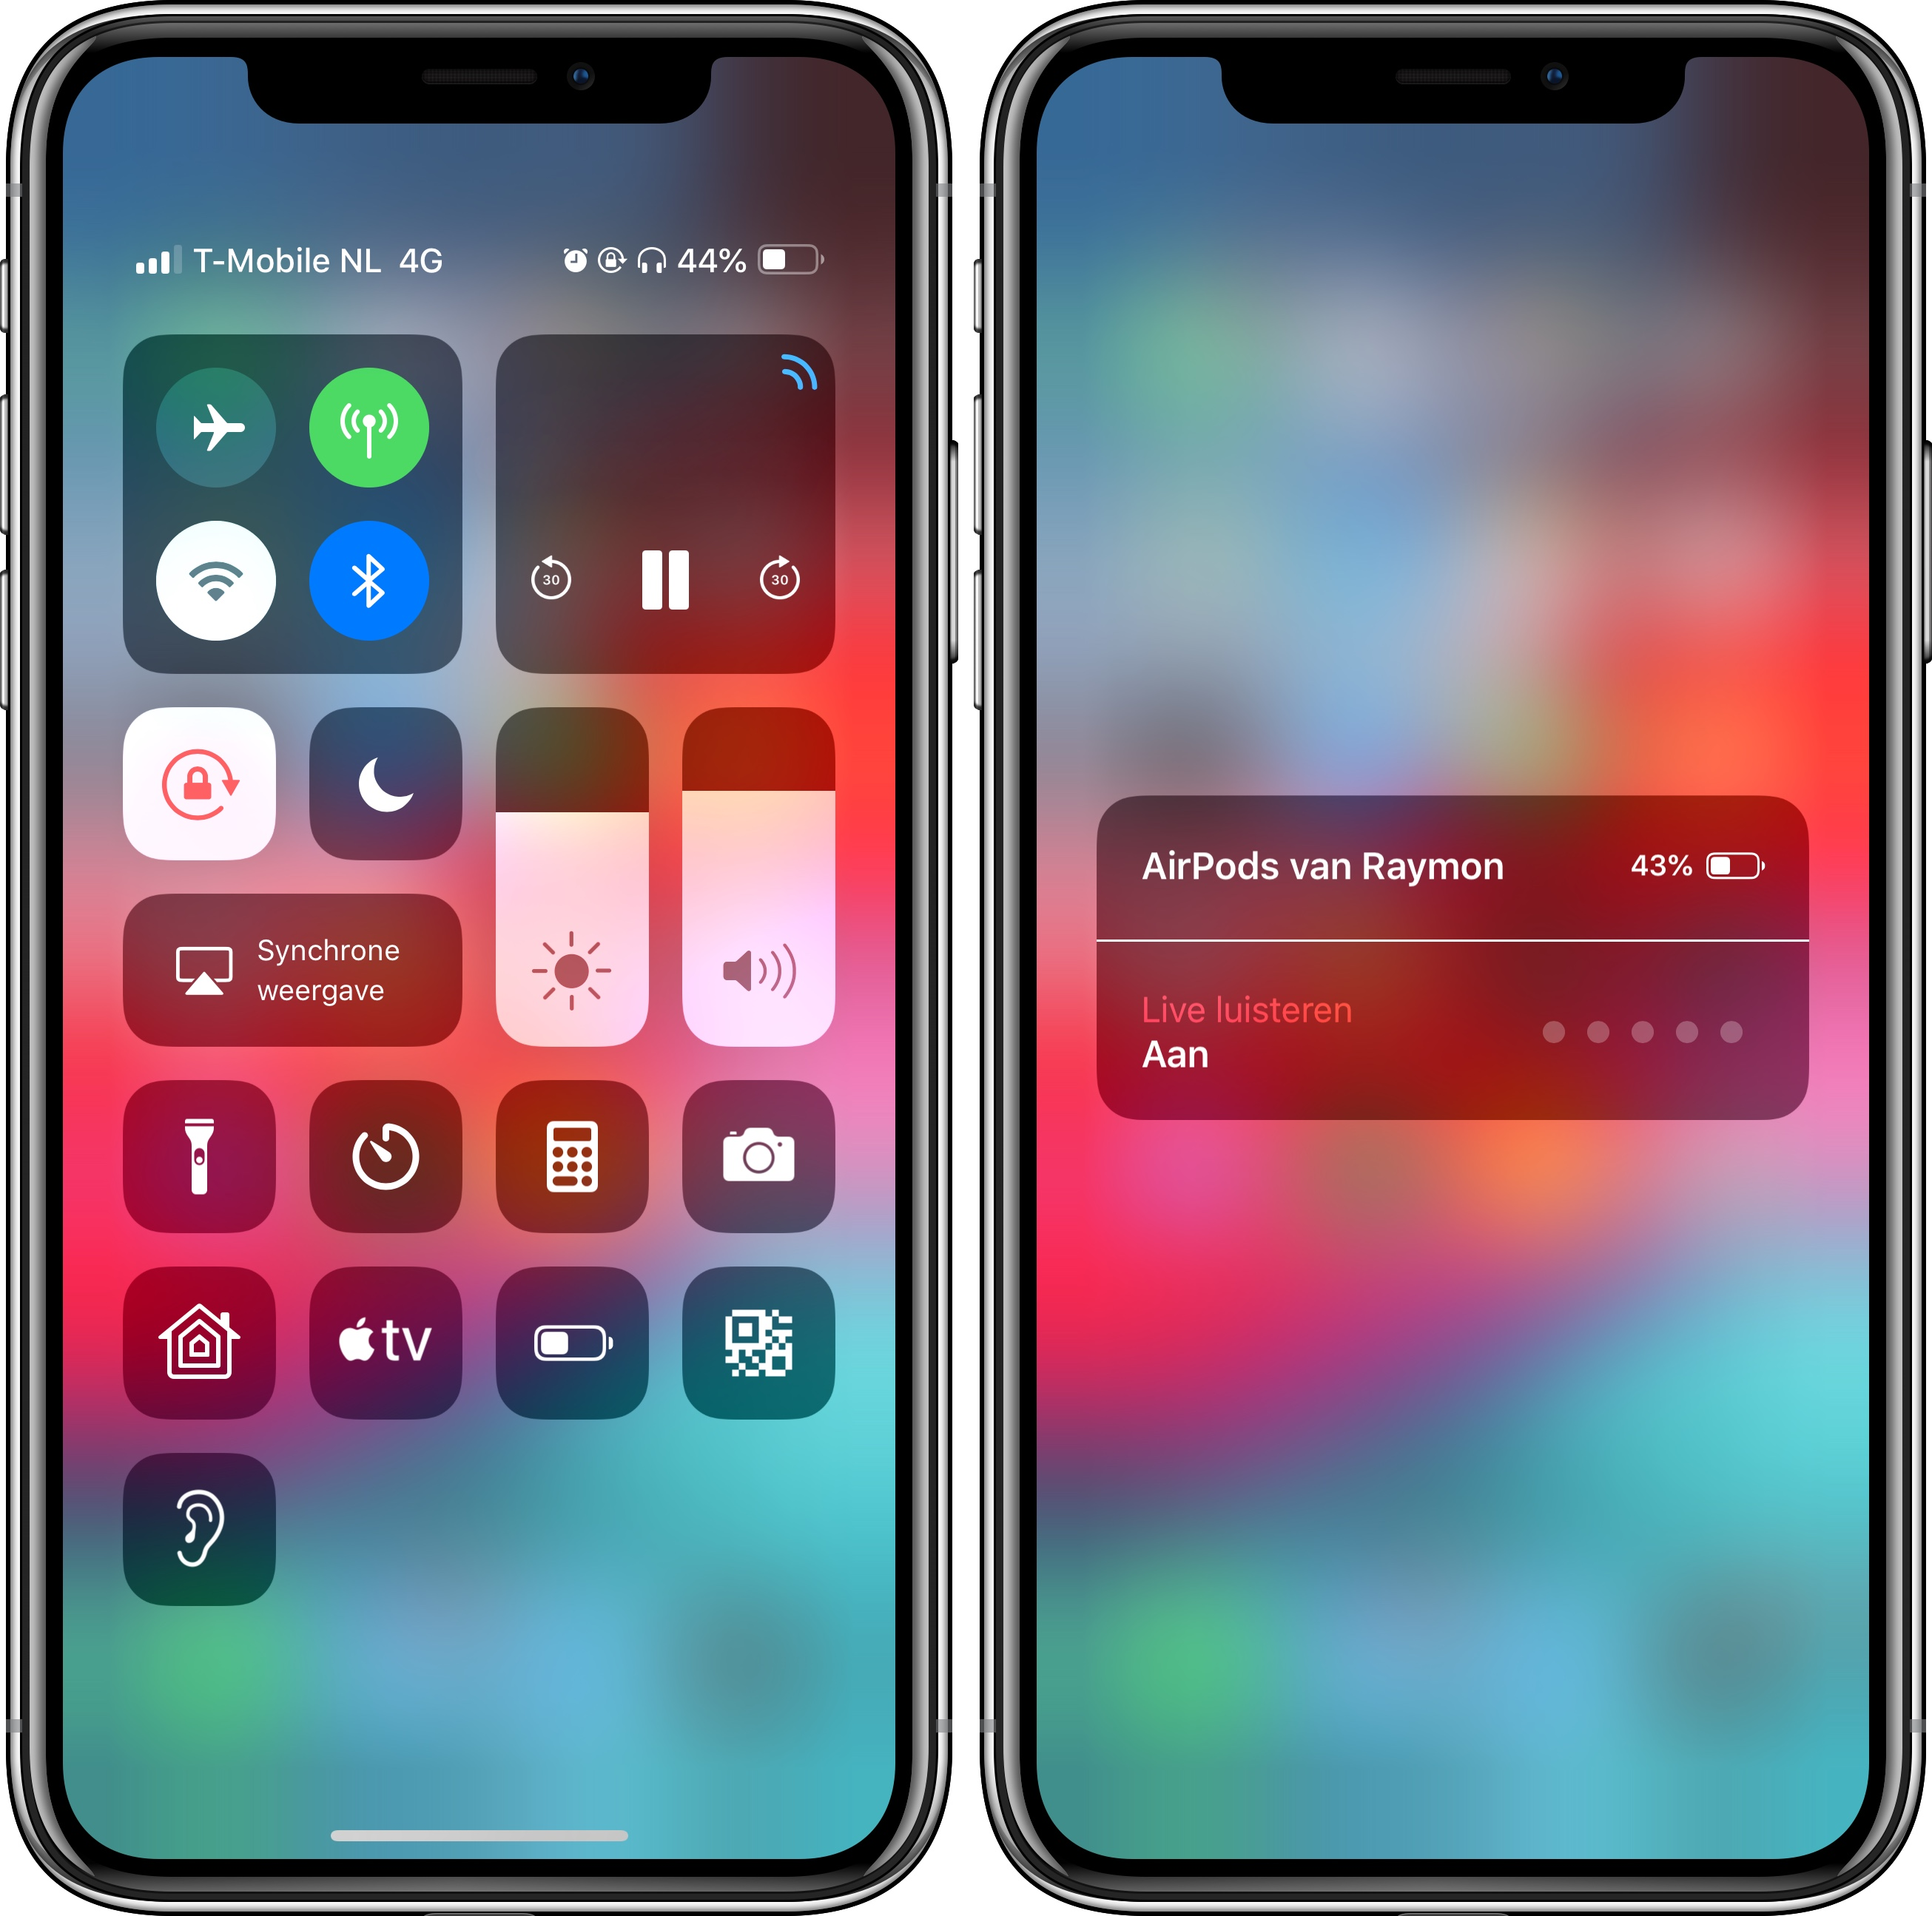 iOS 12 AirPods Live Luisteren